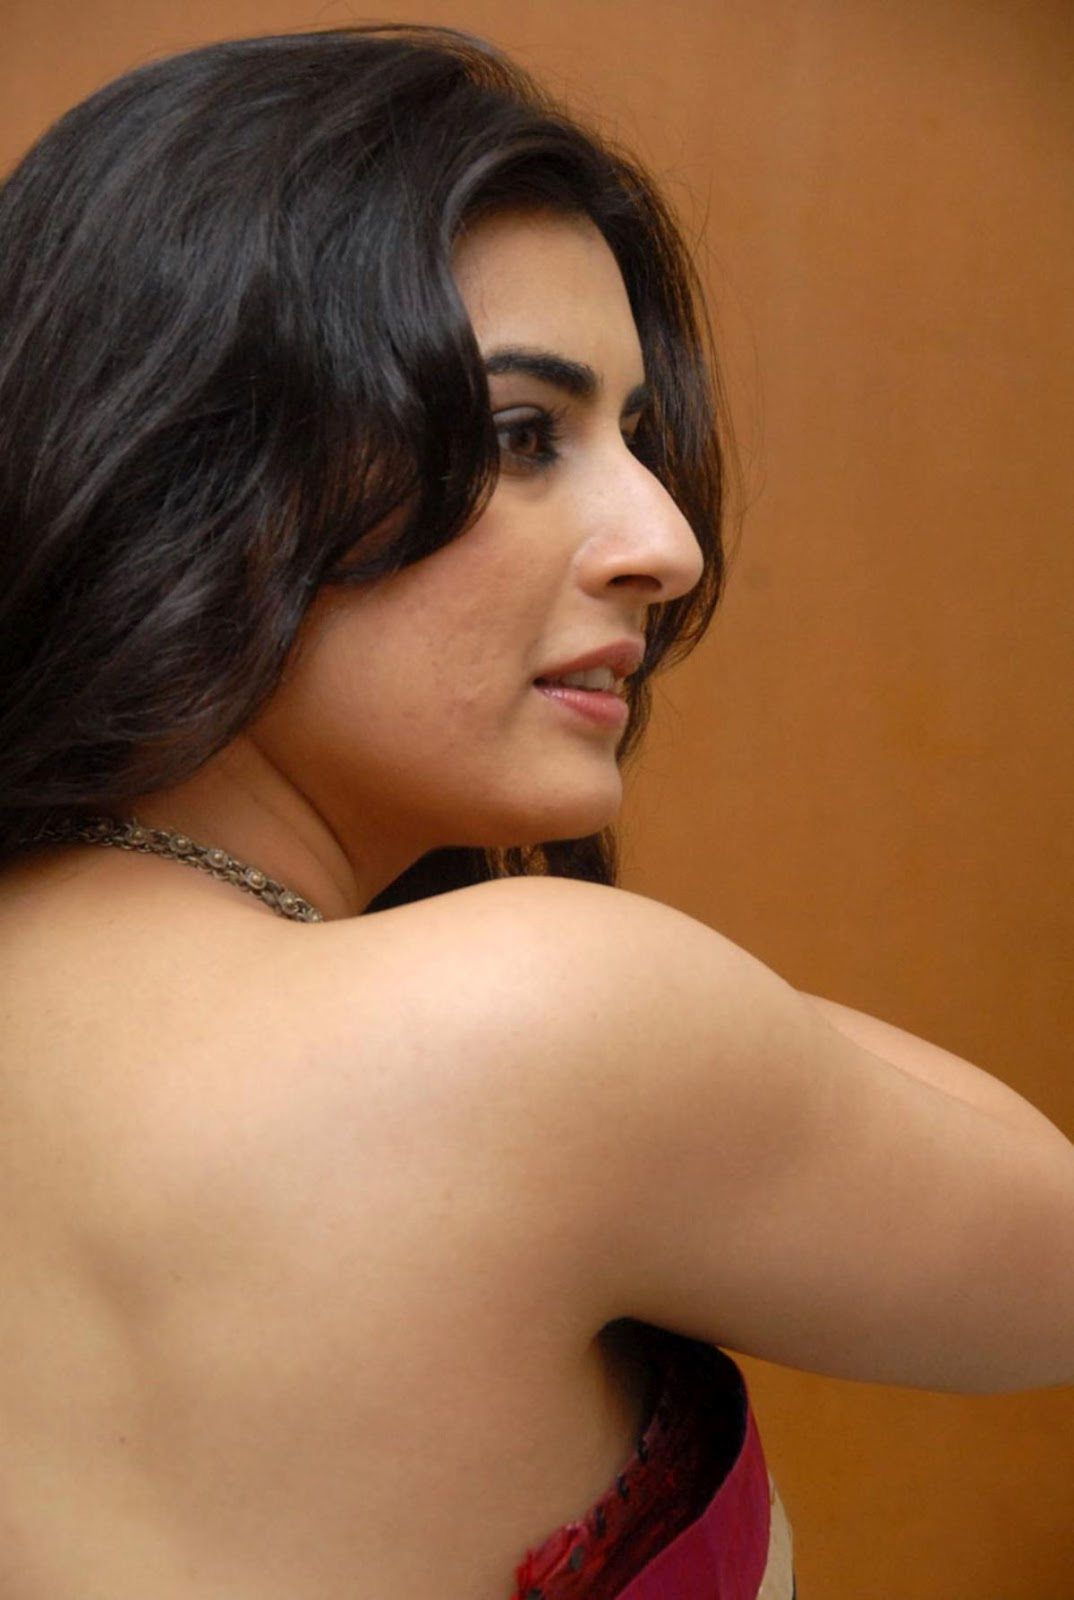 Veda new saree stills, Telugu actress Veda transparent saree photos, actress Veda in without blouse photos, Telugu actress Archana Veda without blouse hot saree stills, Veda in backless saree picture gallery.